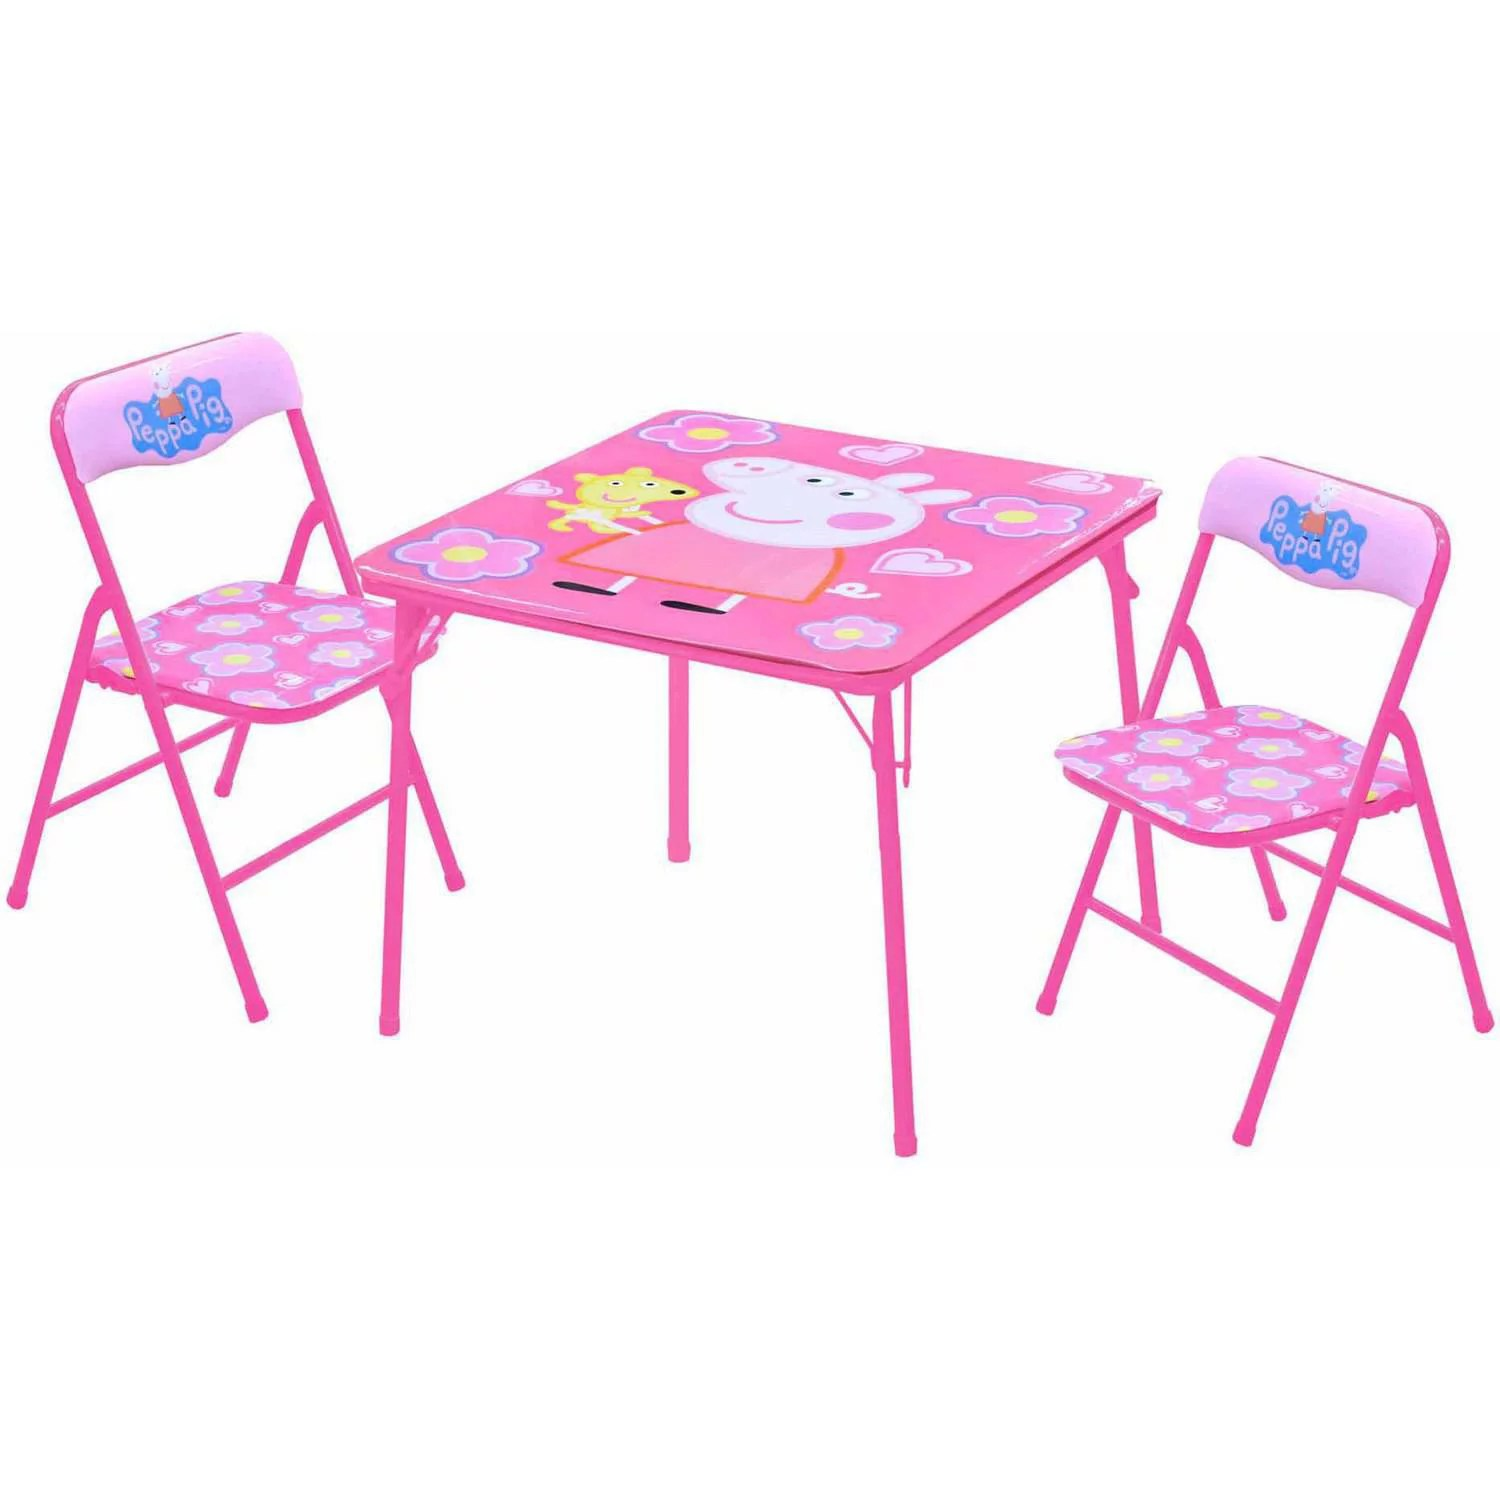 Target Childrens Folding Table And Chairs Cheaper Than Retail Price Buy Clothing Accessories And Lifestyle Products For Women Men